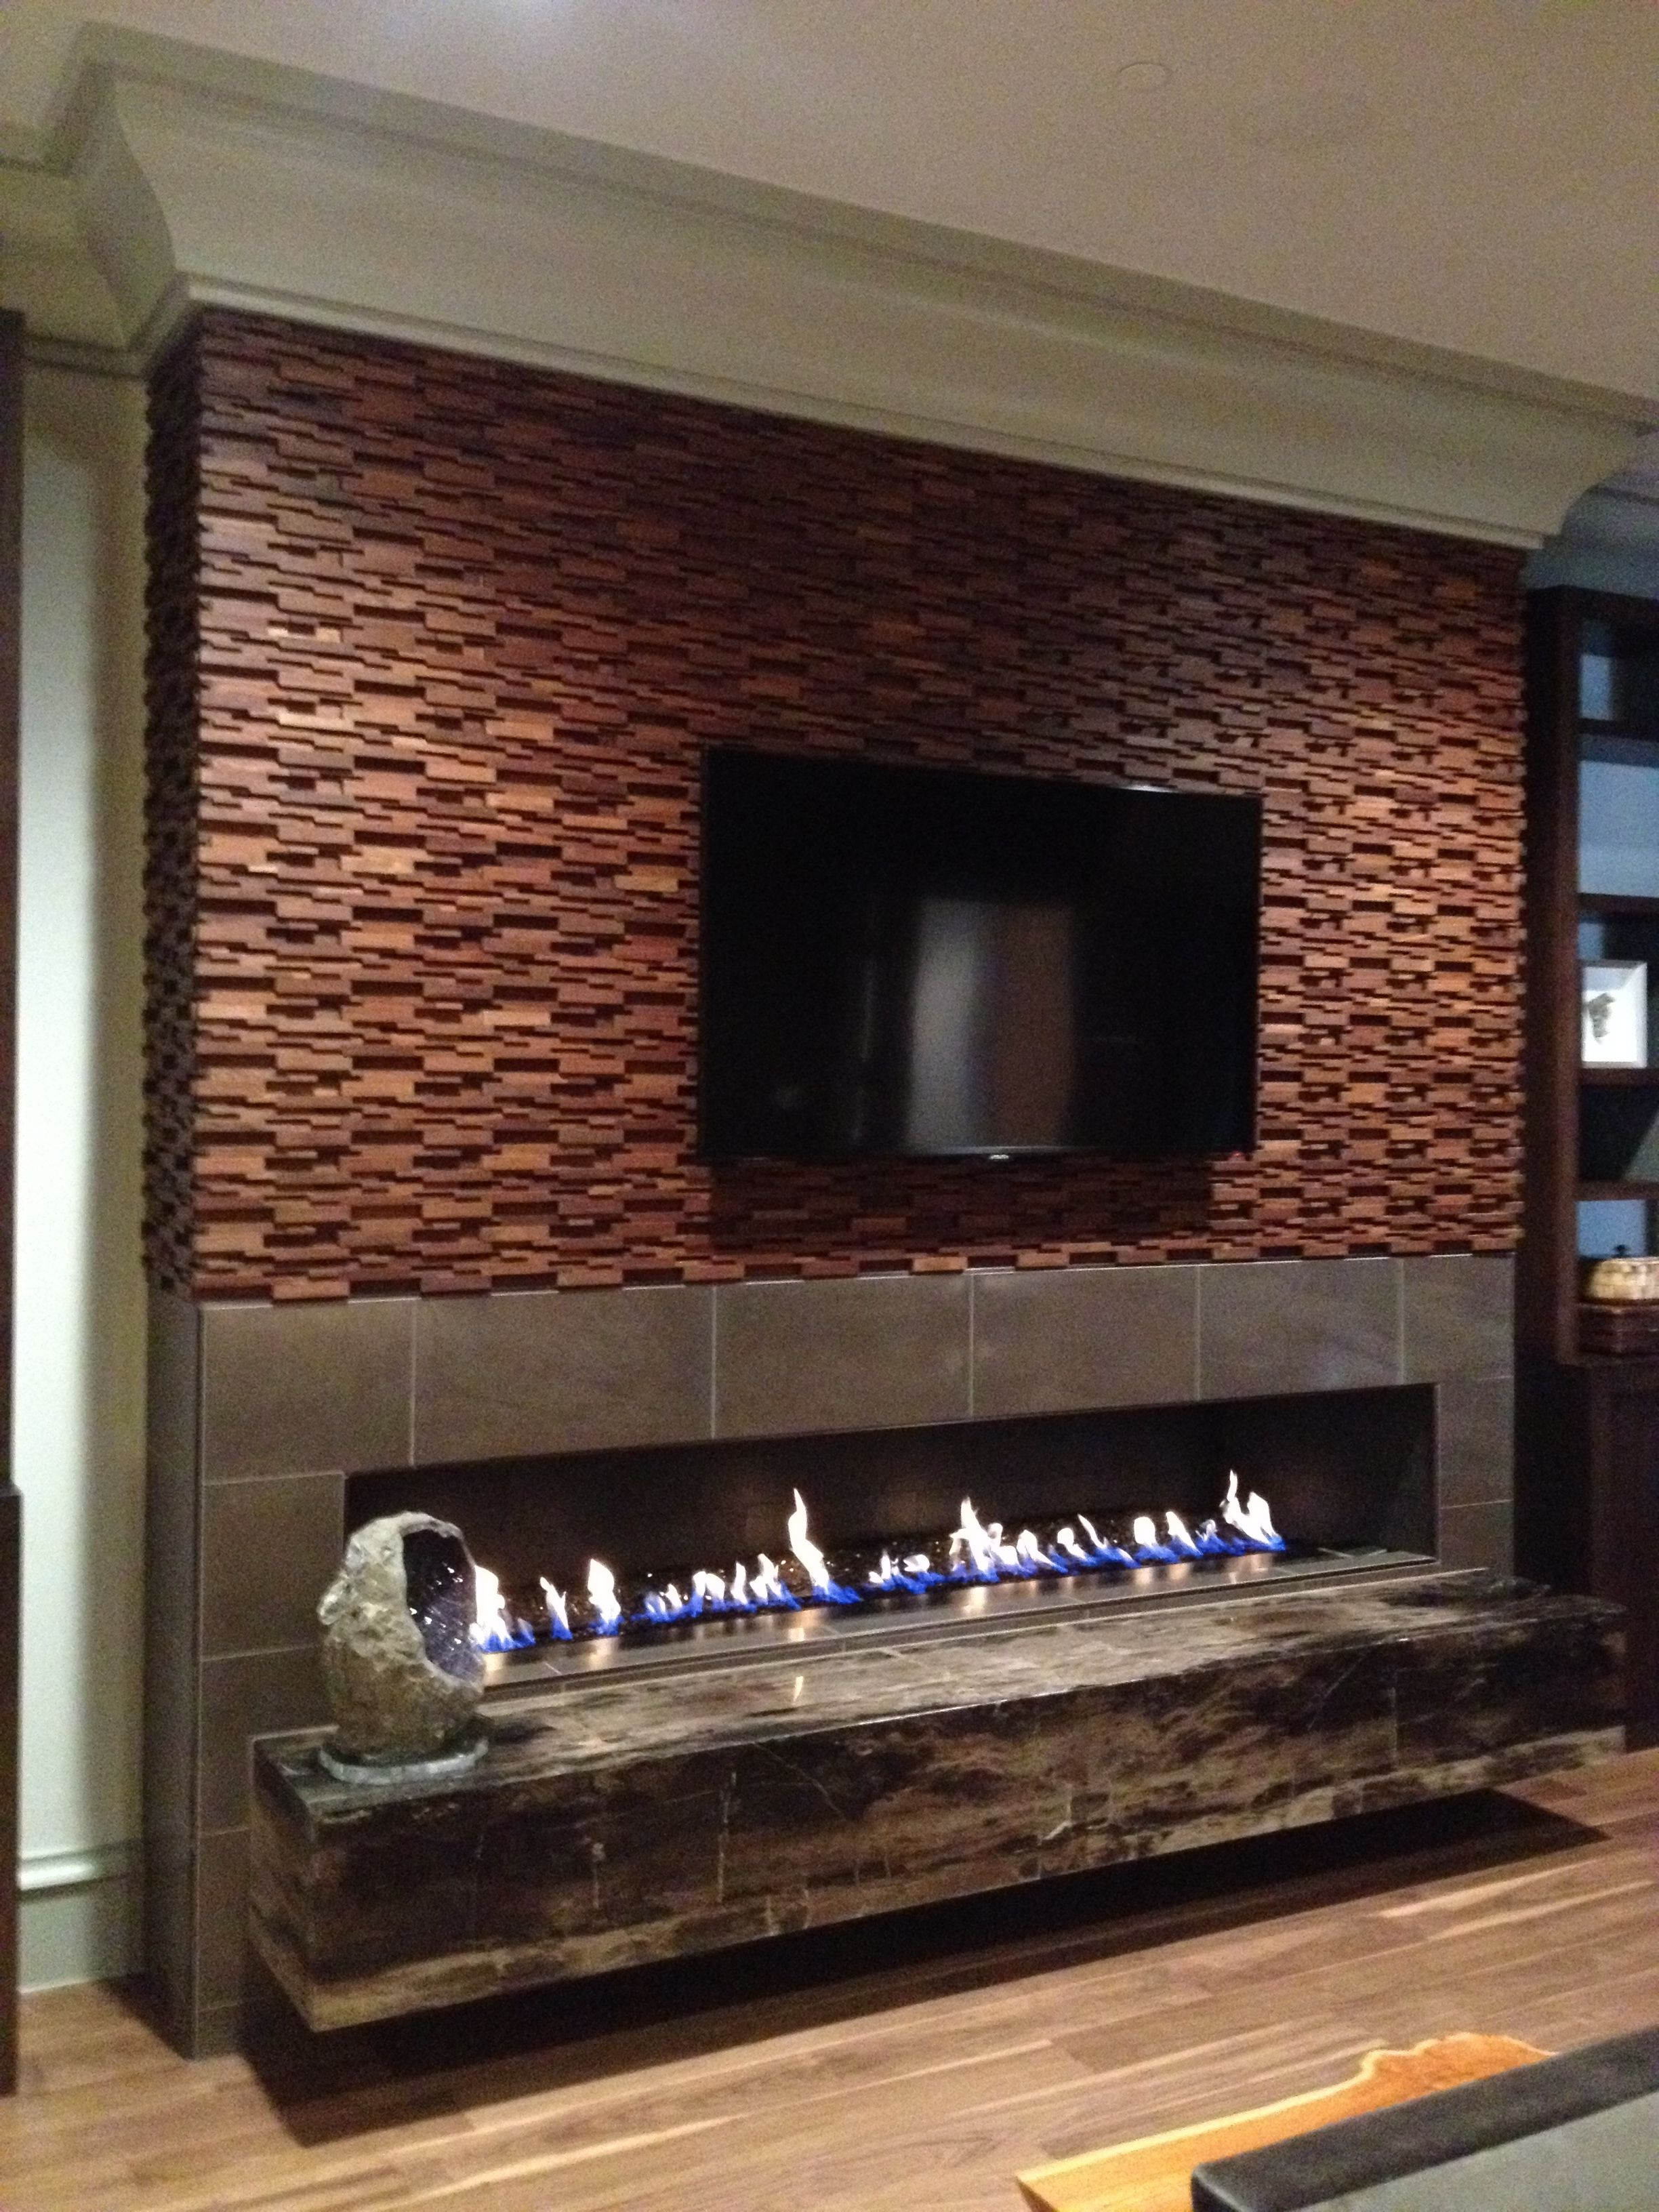 image result for fireplace ideas tile fireplaces rh pinterest com